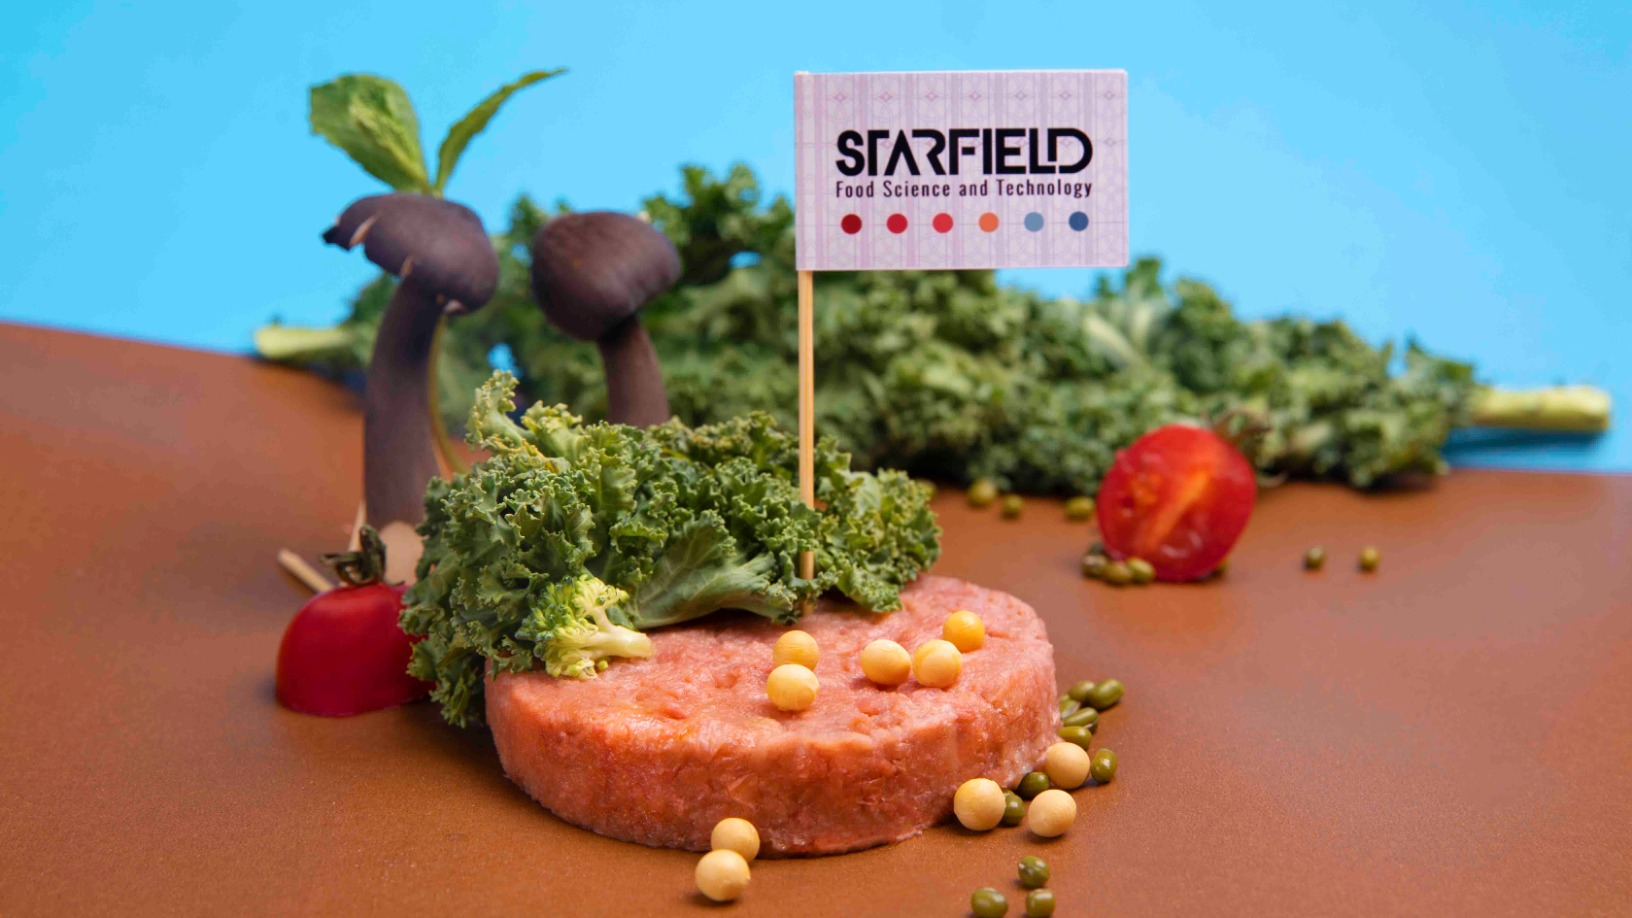 Starfield: Aiming to diversify Chinese consumers' food options with tasty and affordable plant-based meat